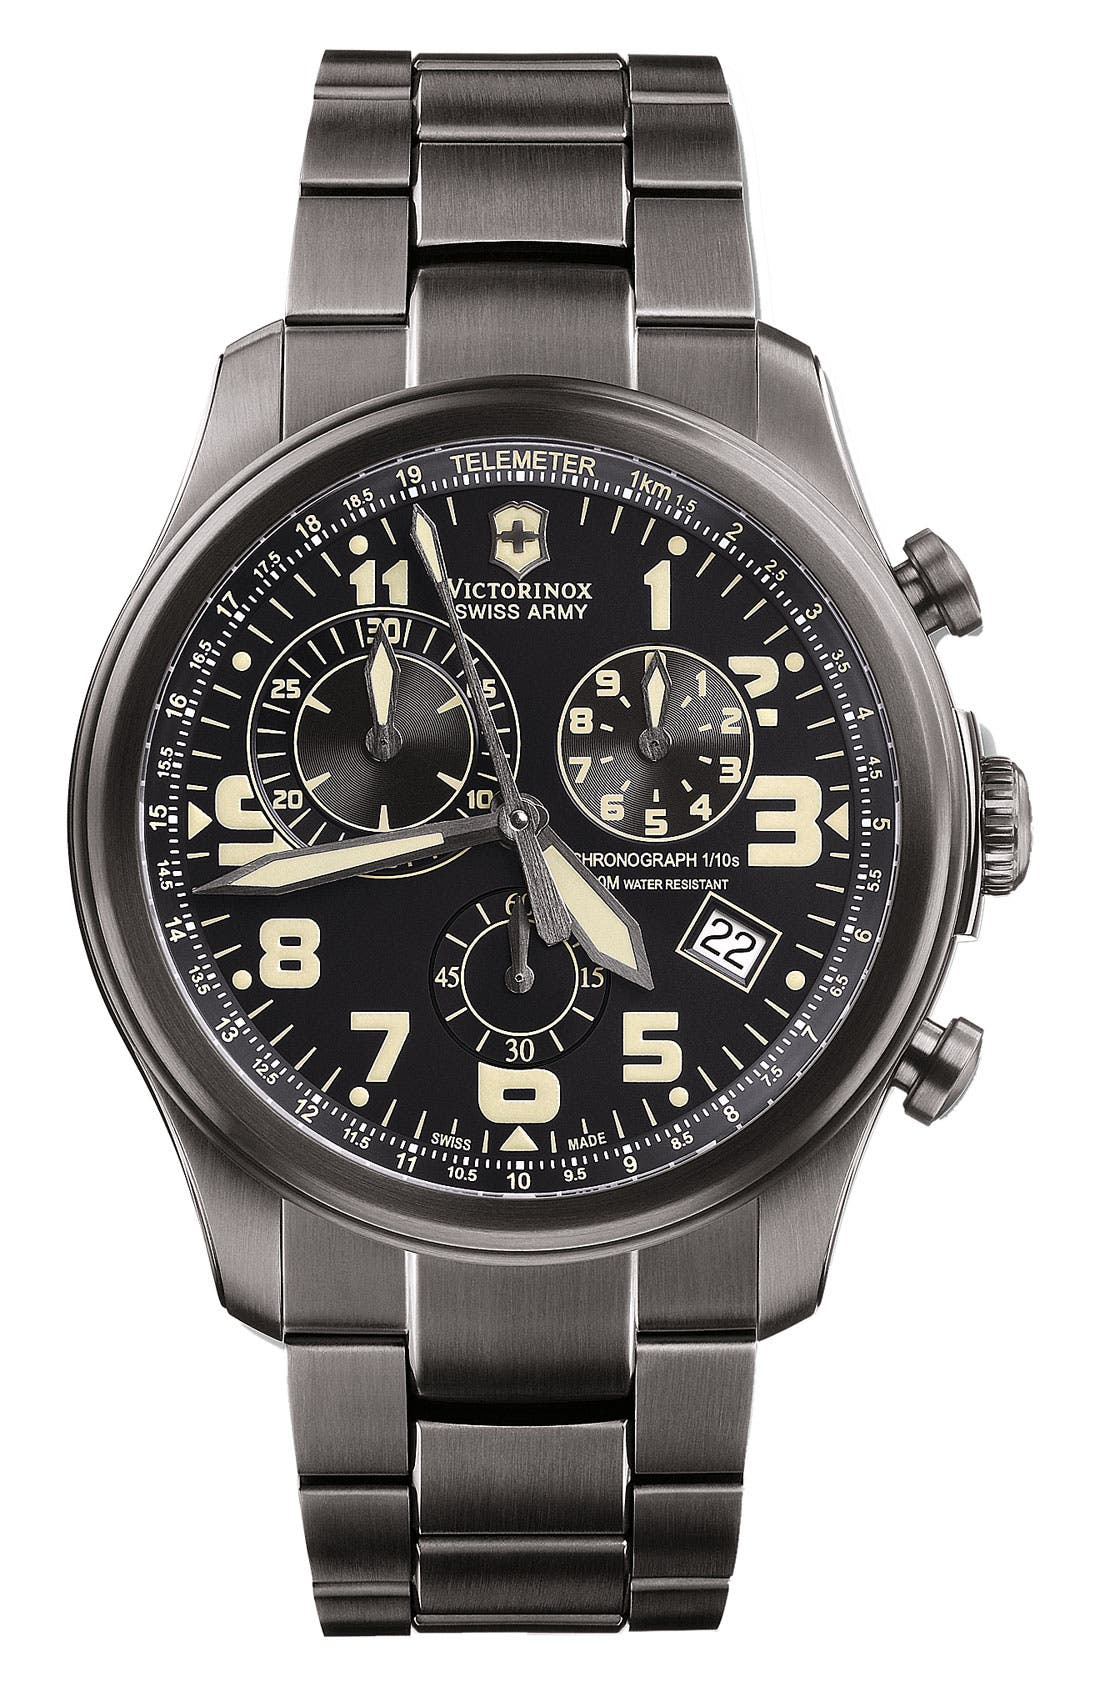 Alternate Image 1 Selected - Victorinox Swiss Army® 'Infantry - Vintage' Leather Strap Watch, 44mm